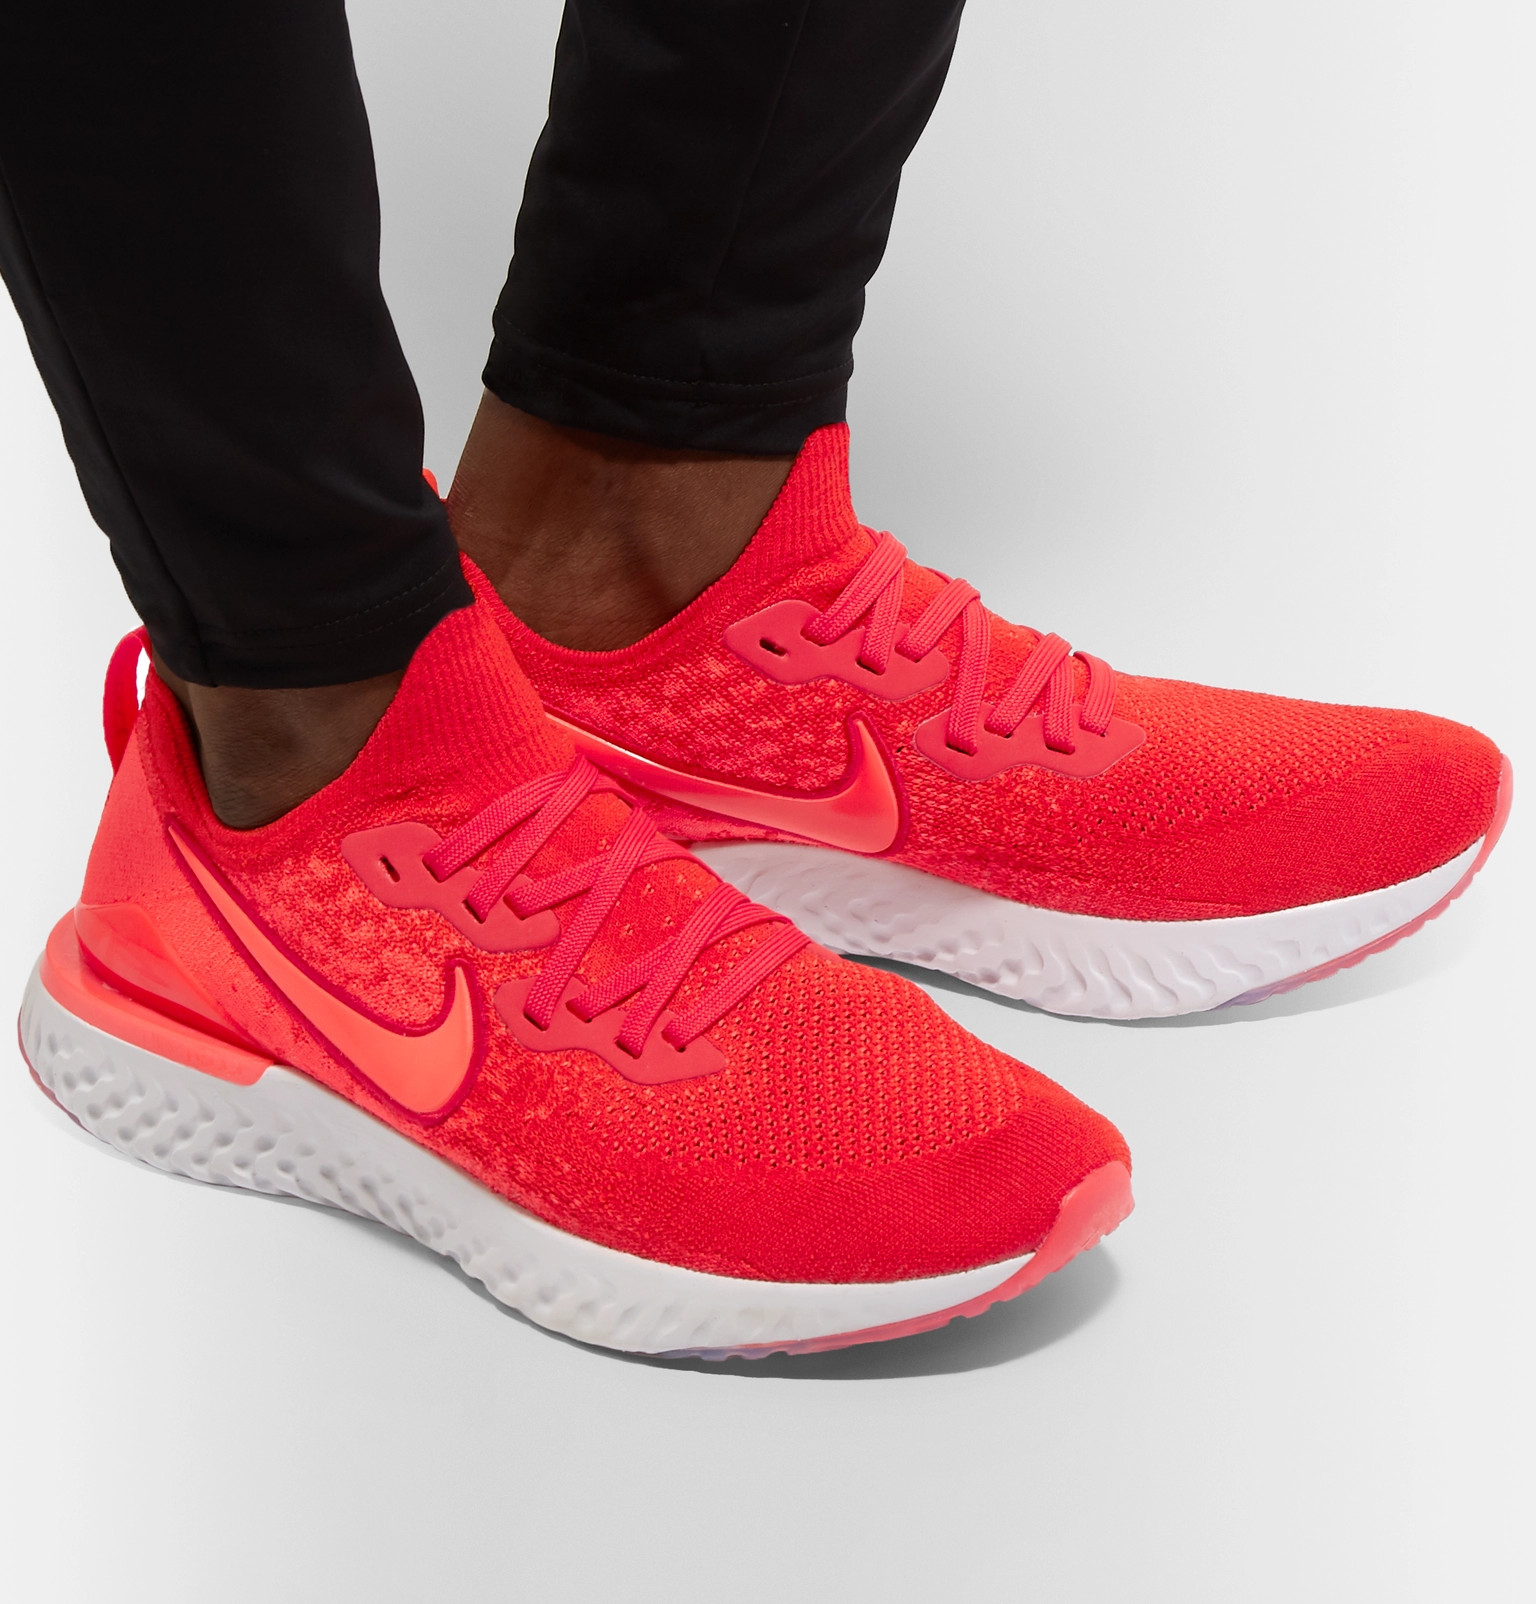 6a91f87341db Nike Running - Epic React Flyknit 2 Running Sneakers